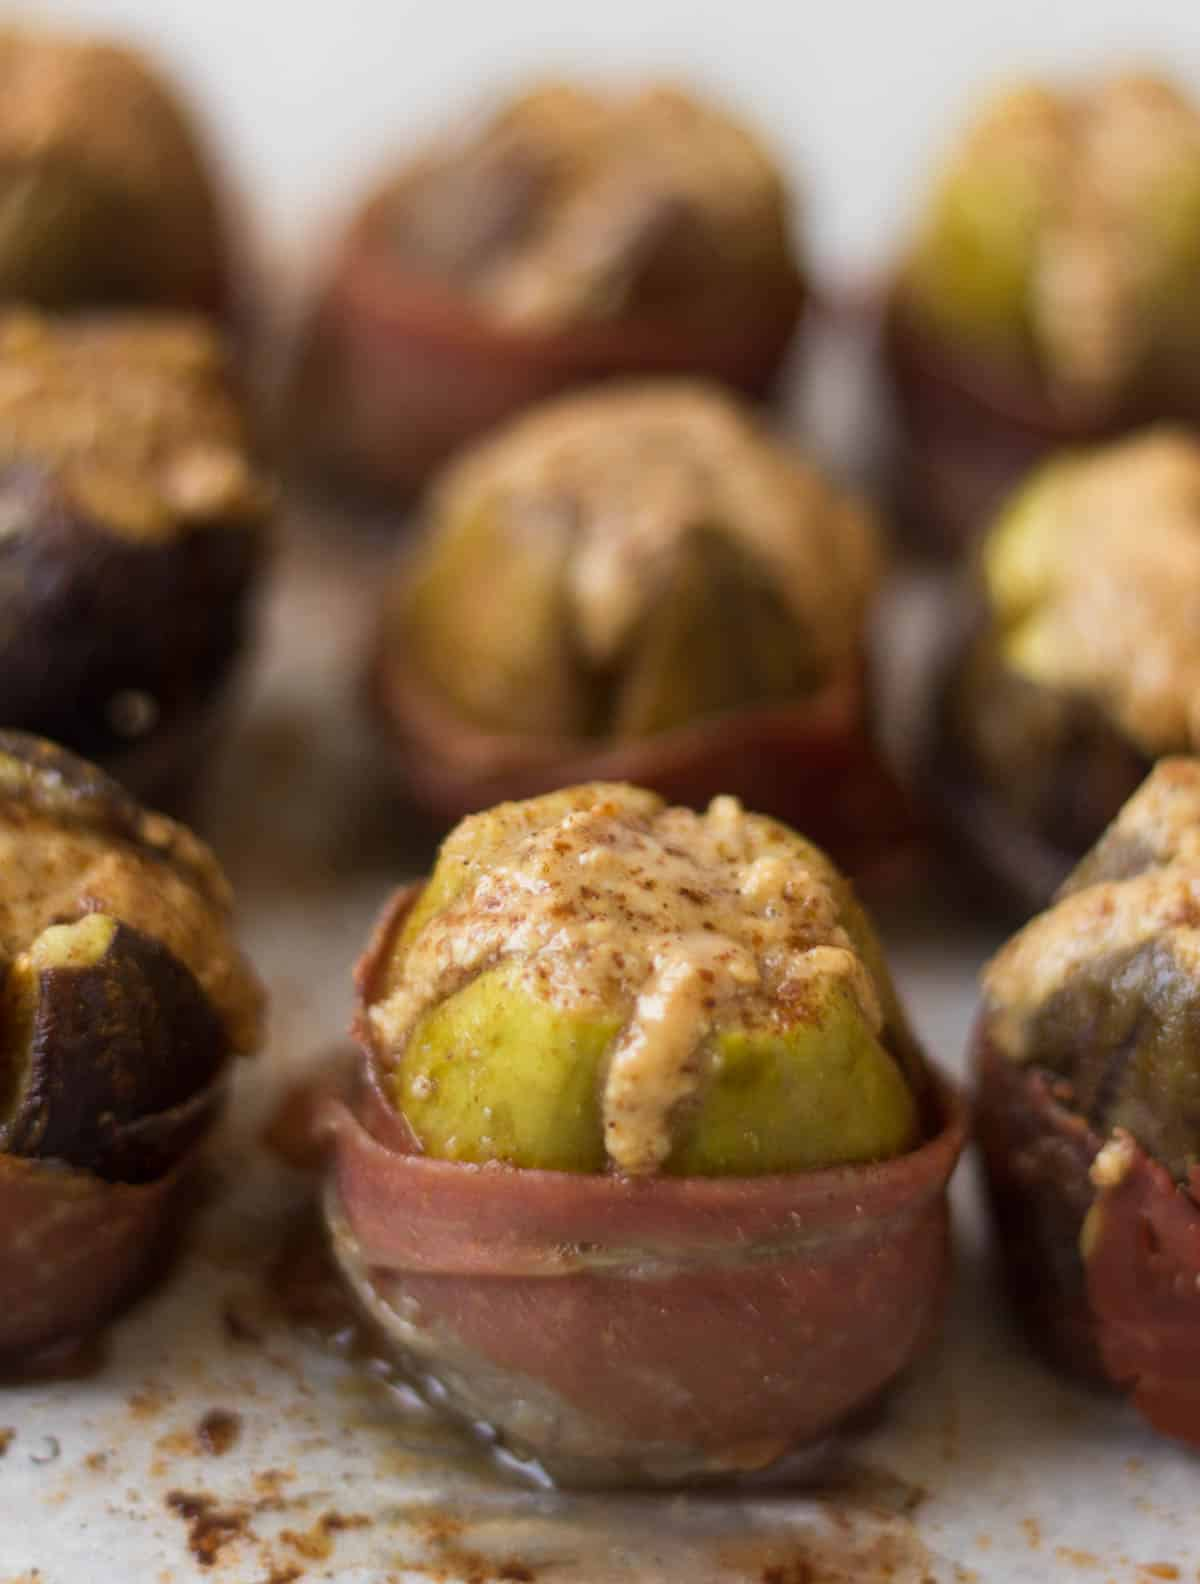 A perfect appetizer for fall, these Prosciutto Wrapped Figs are stuffed with almond butter for making a sweet & salty combo - paleo, Whole30, and gluten free! - Eat the Gains